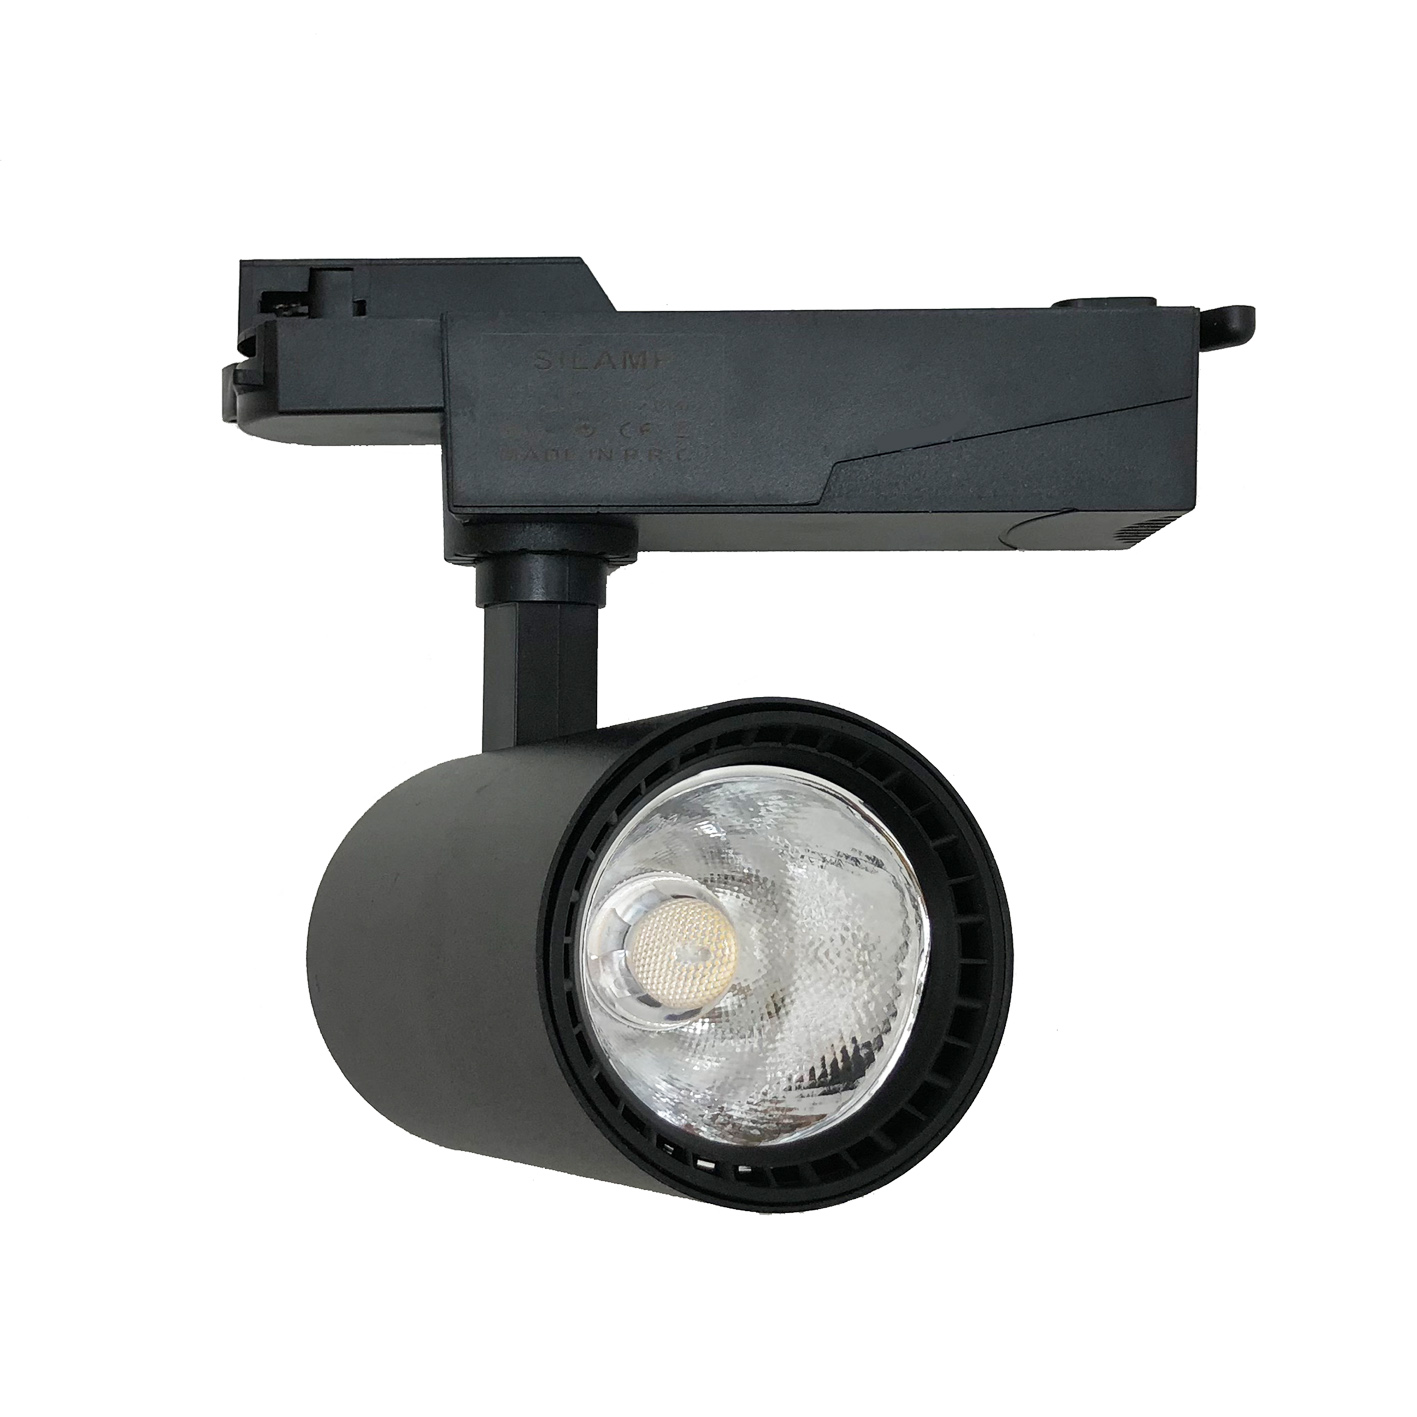 Faretto LED a binario 20w monofase illuminazione a binario led fb-14